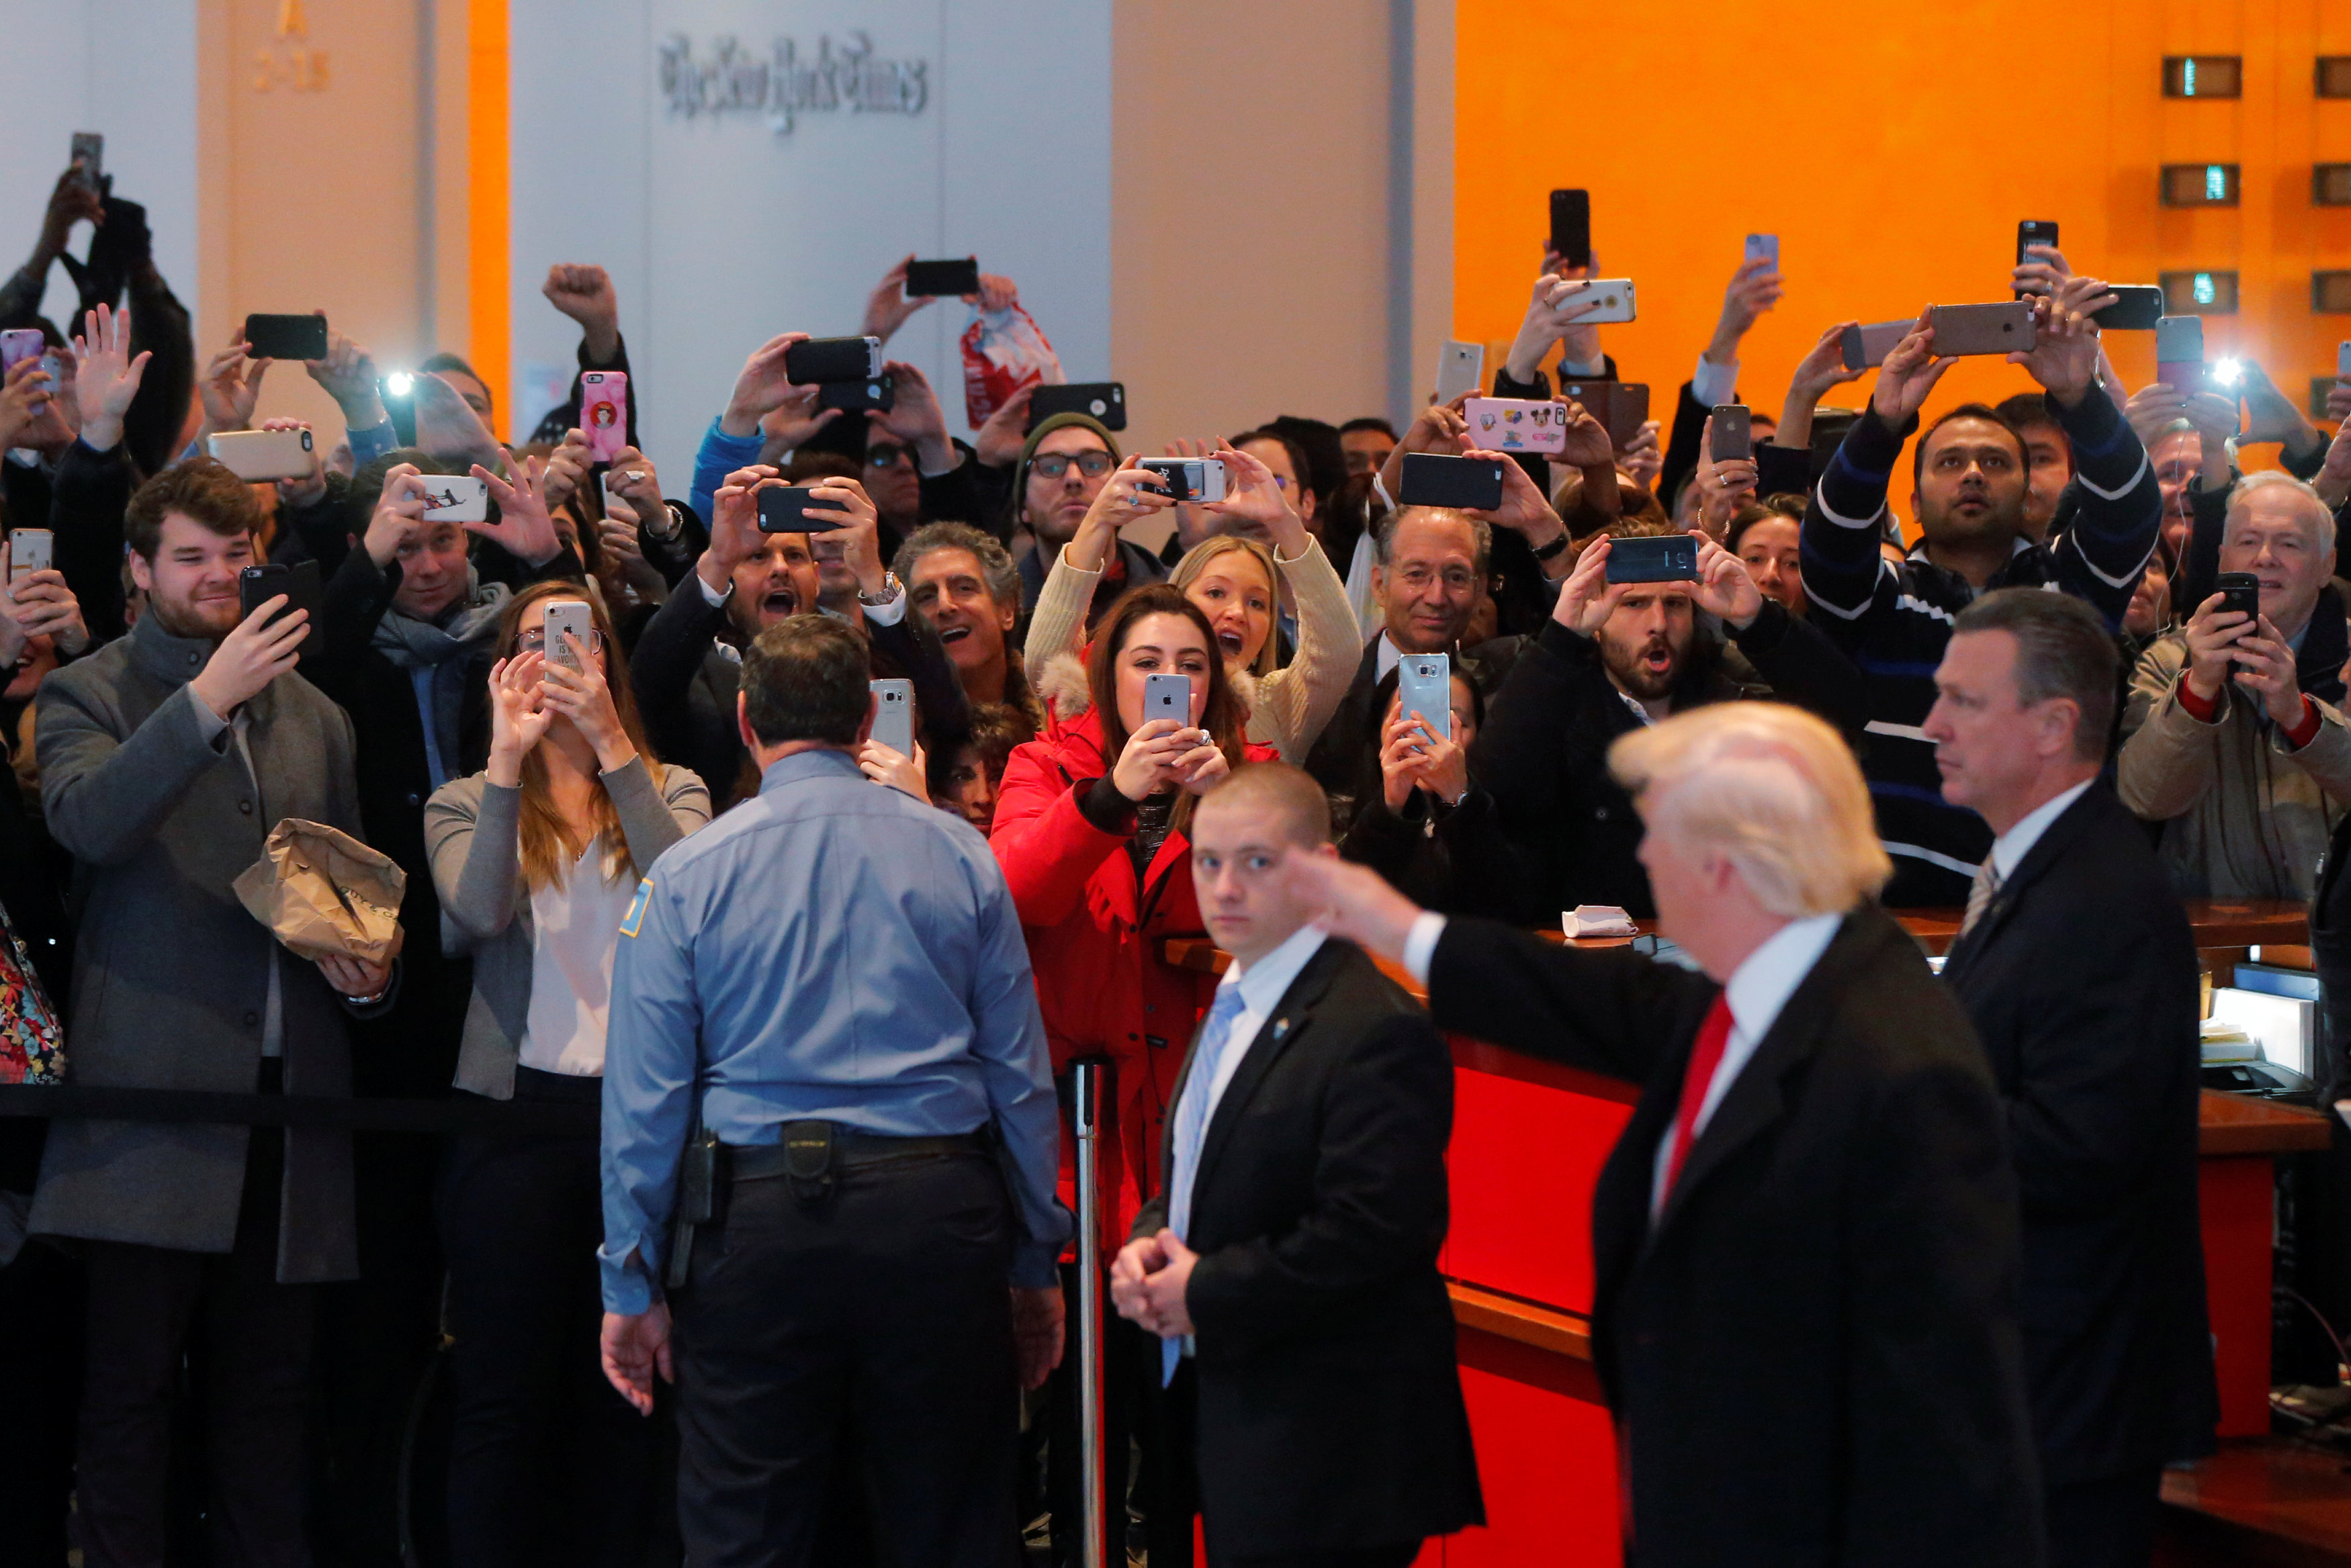 A gathered crowd reacts to U.S. President elect Donald Trump in the lobby of the New York Times building after a meeting in New York, U.S., November 22, 2016.  REUTERS/Lucas Jackson